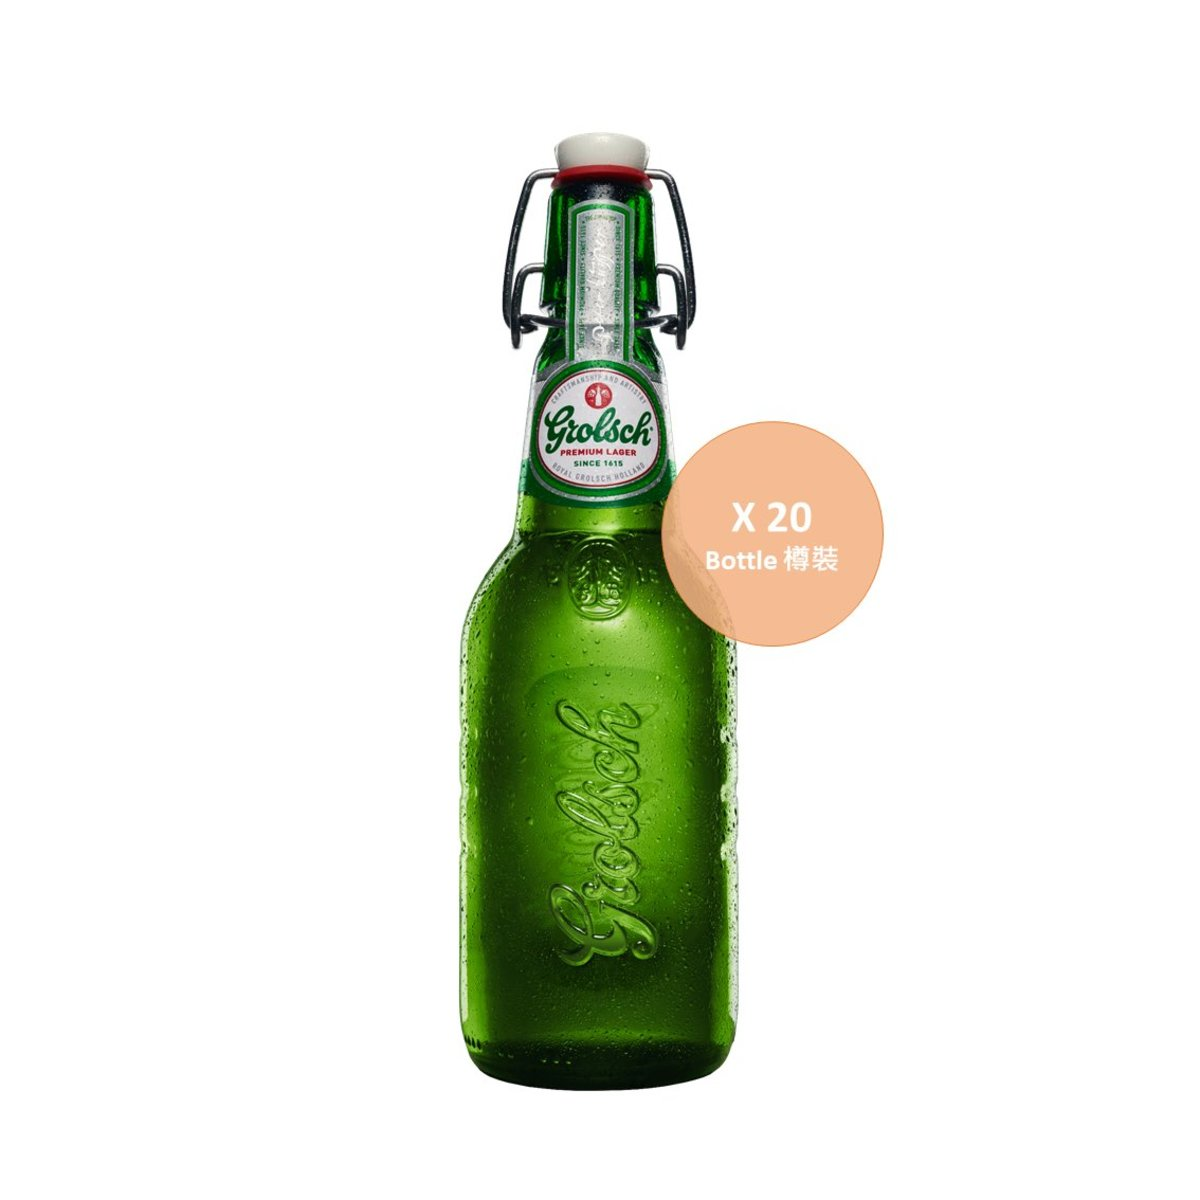 [Full Case]Premium Lager - Swingtop Bottles - Clearance Sales (Best Before: 23/11/2019)